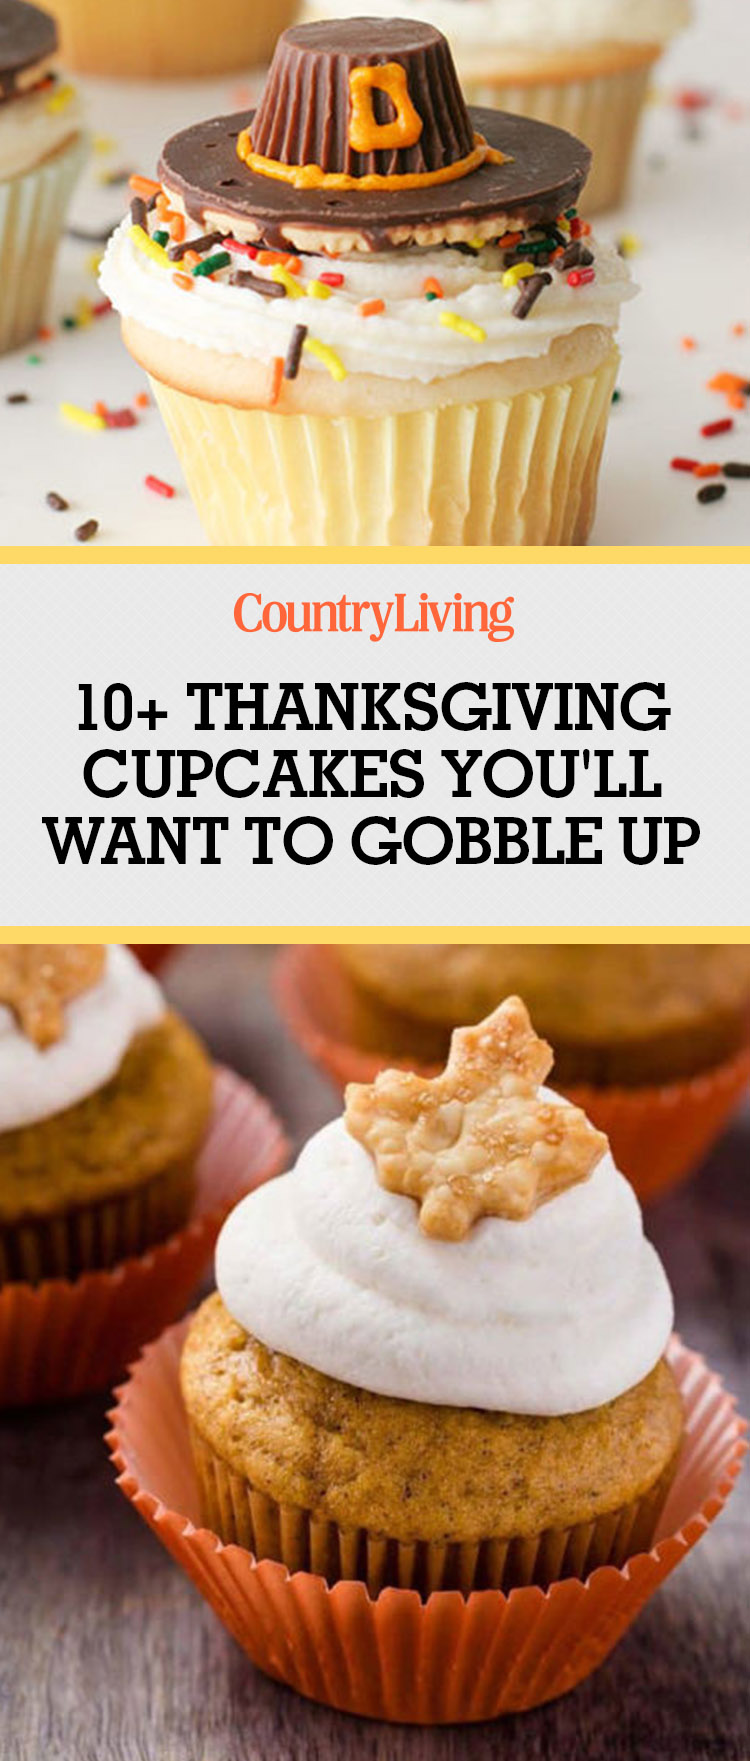 12 easy thanksgiving cupcakes cute decorating ideas and for Decorations for thanksgiving cupcakes